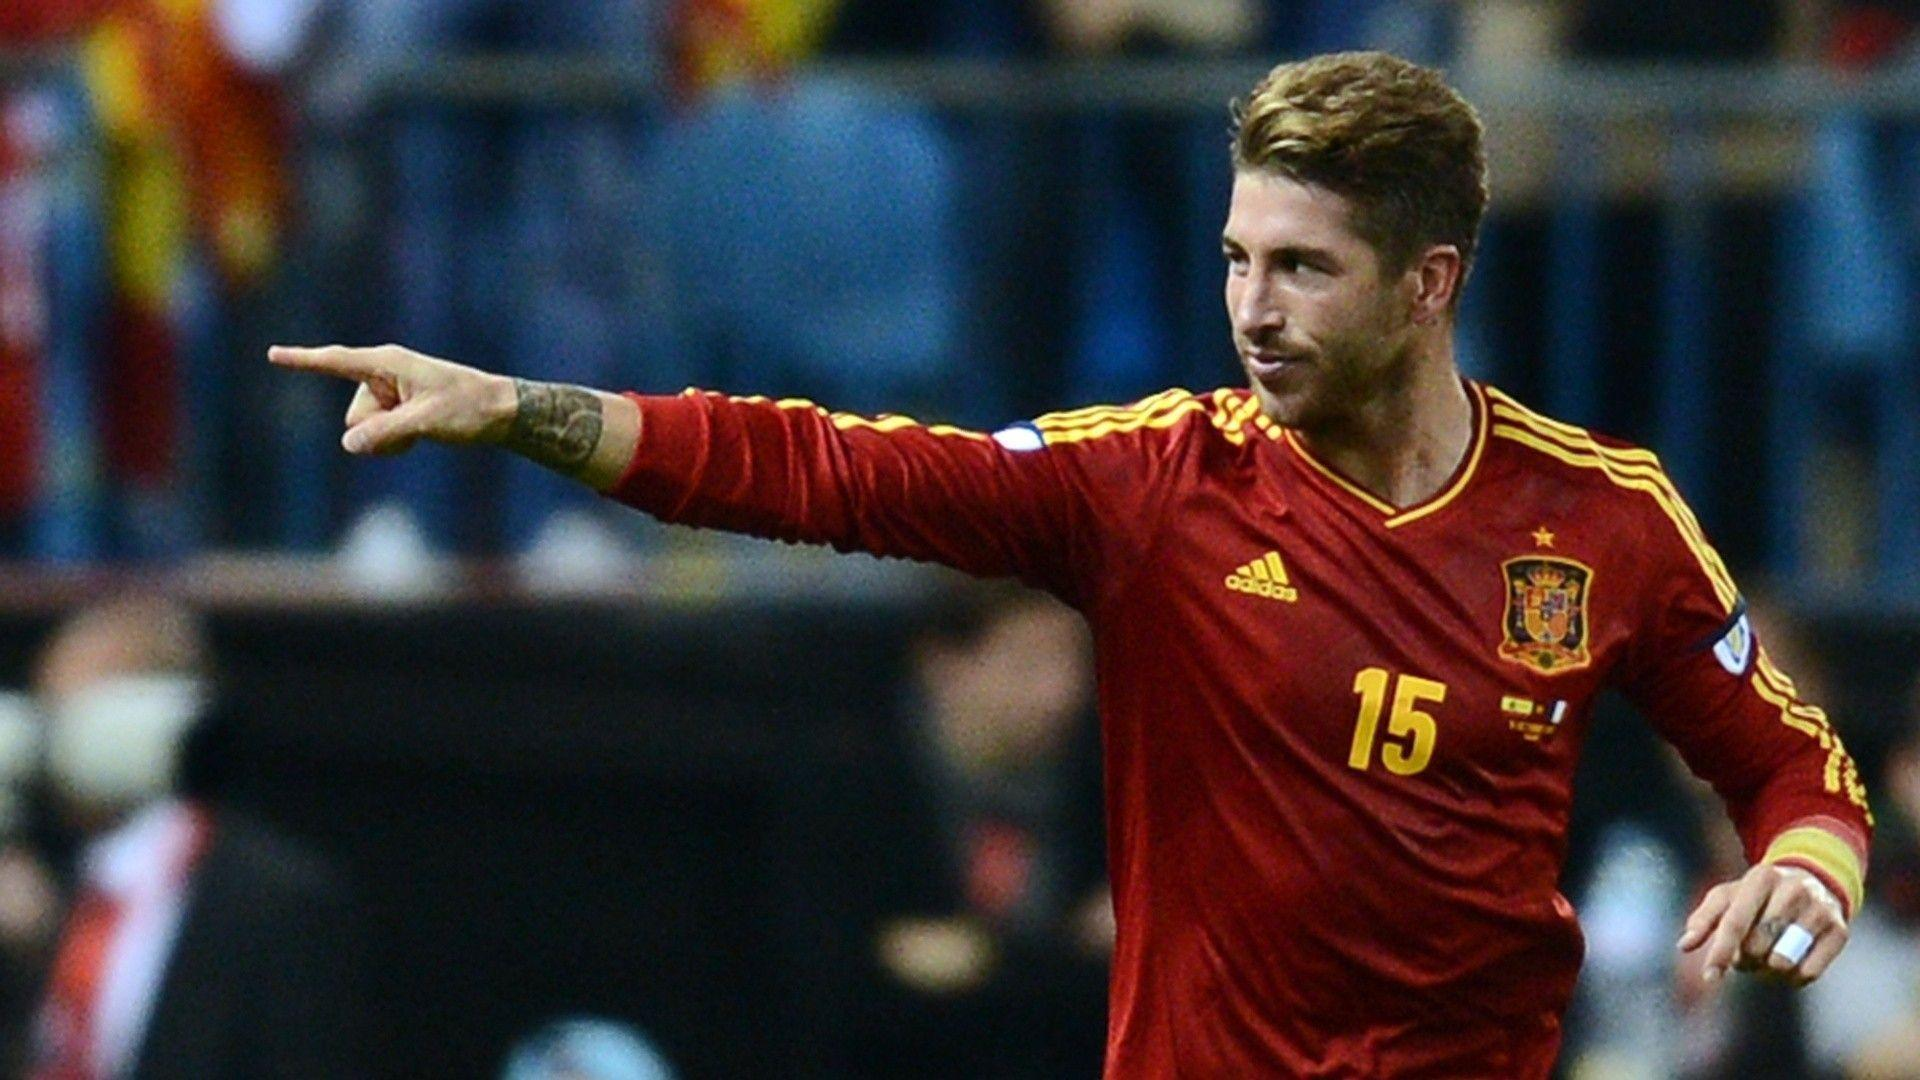 sergio ramos hd images - photo #7